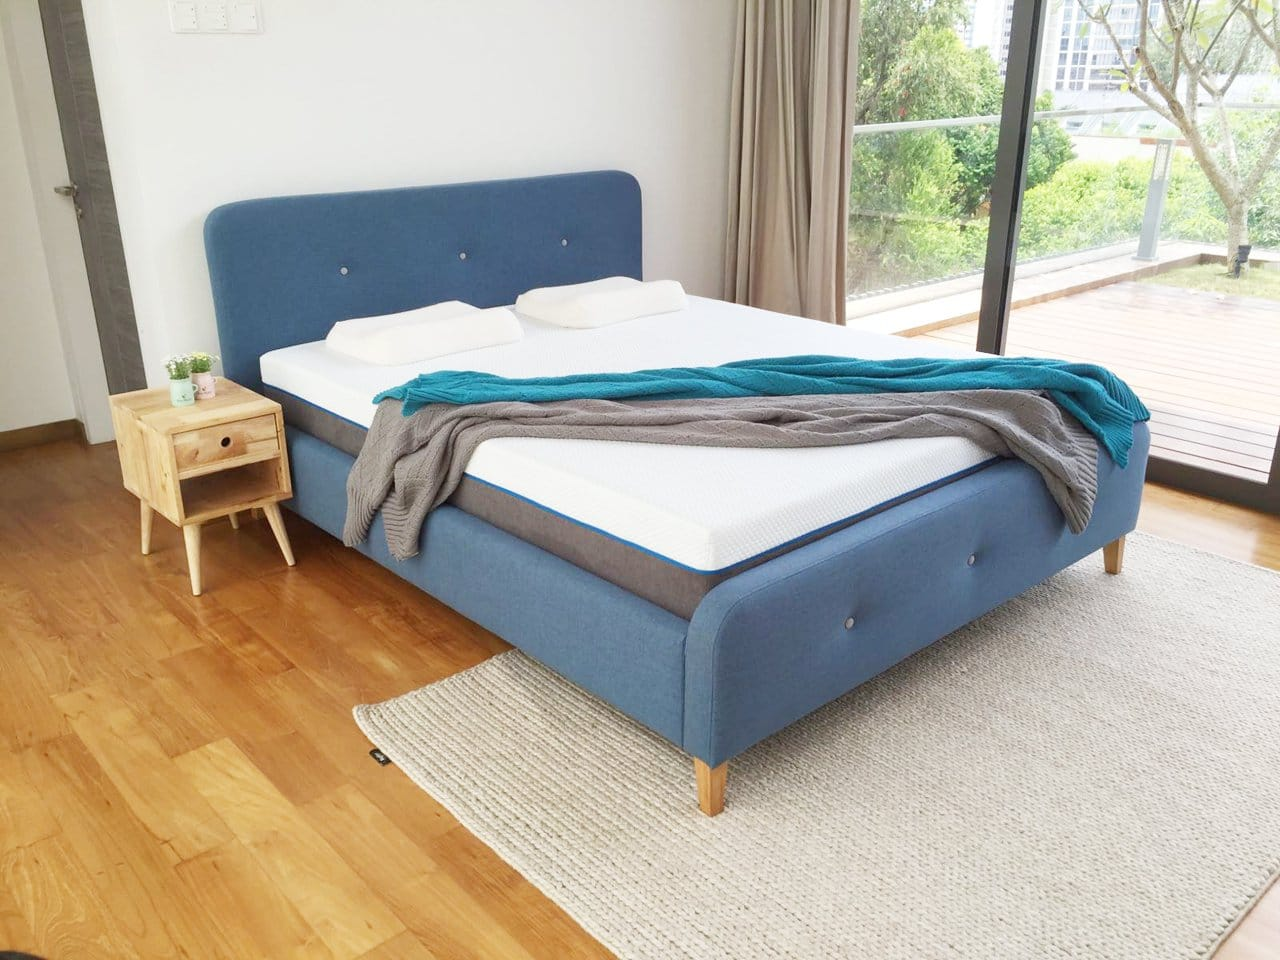 snug bed frame super single comfort design the chair table